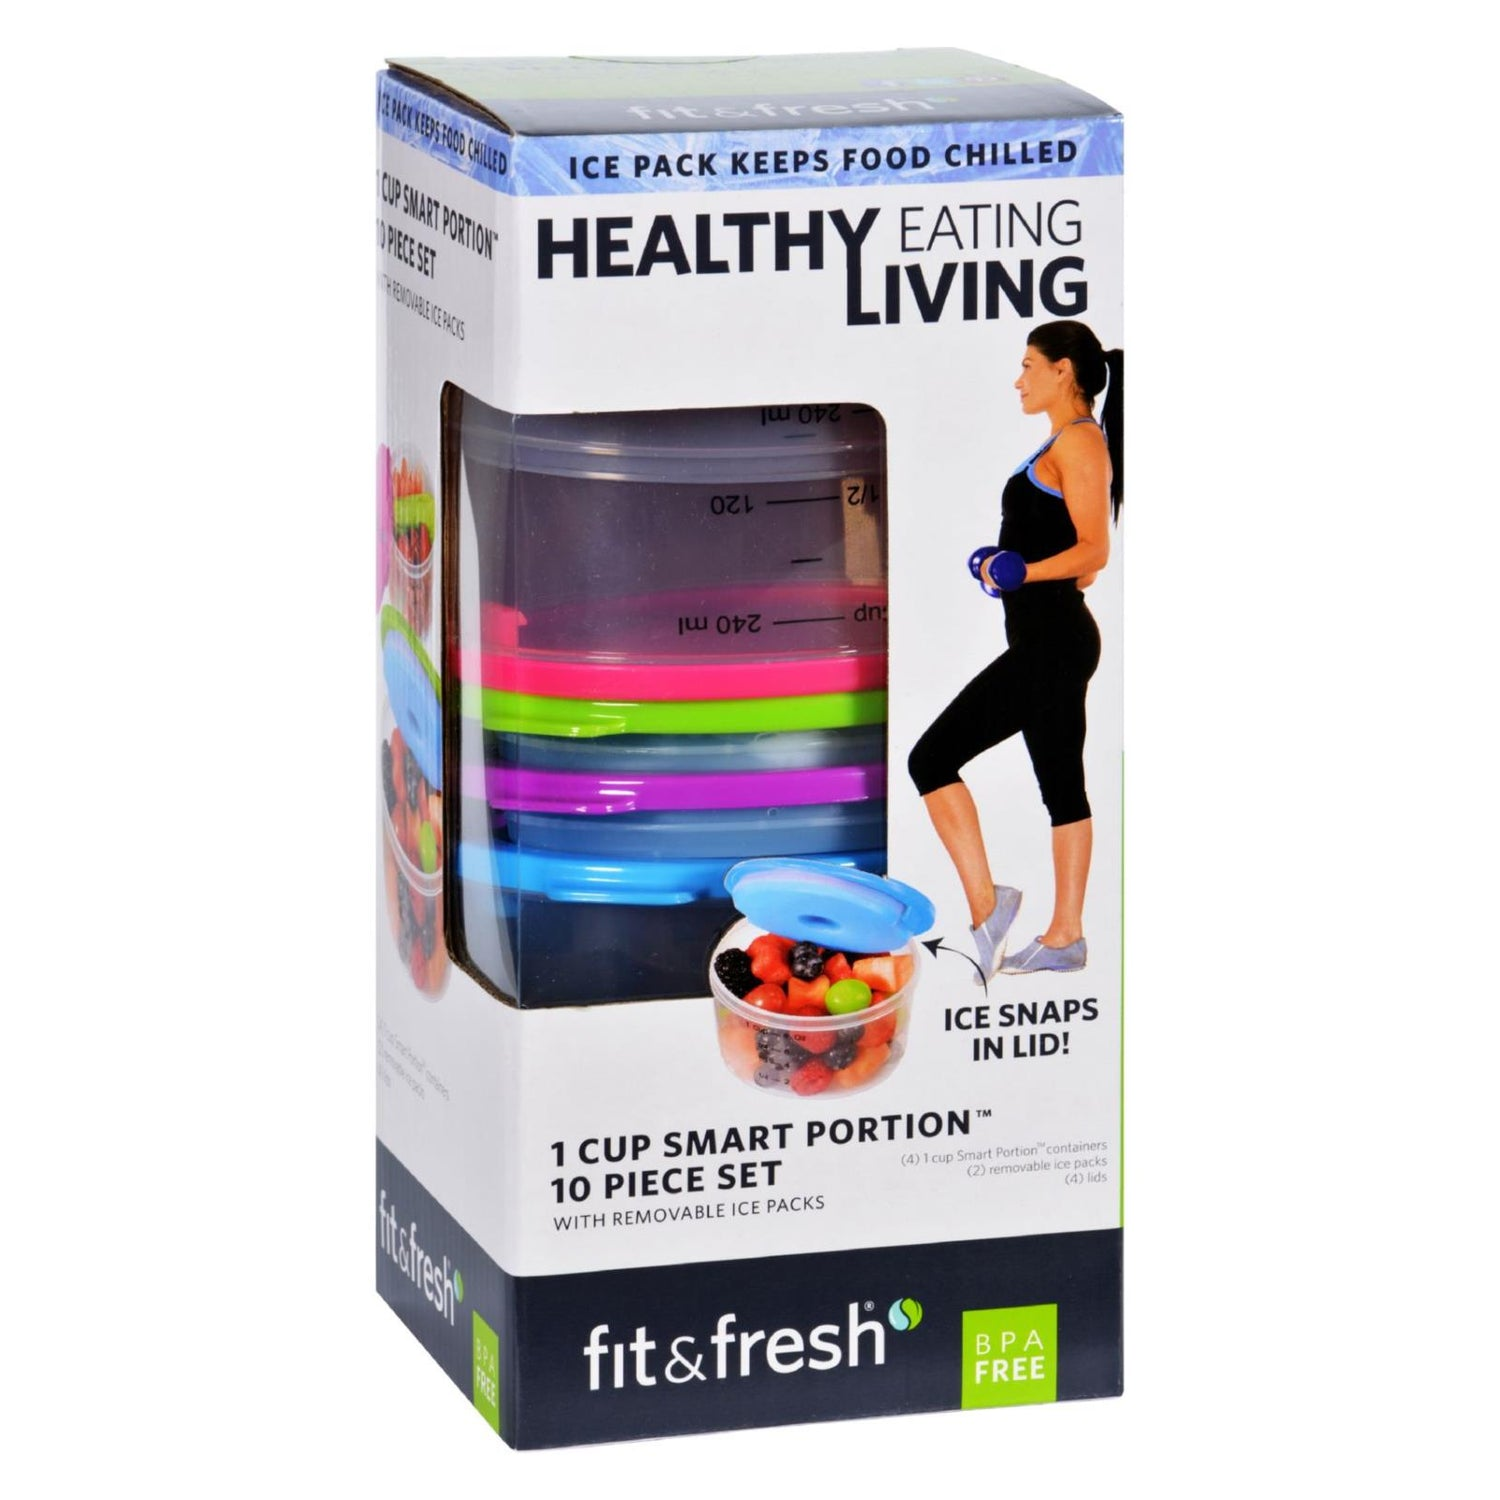 Fit And Fresh Containers - Healthy Living - Smart Portion - 1 Cup Size - 10 Pieces